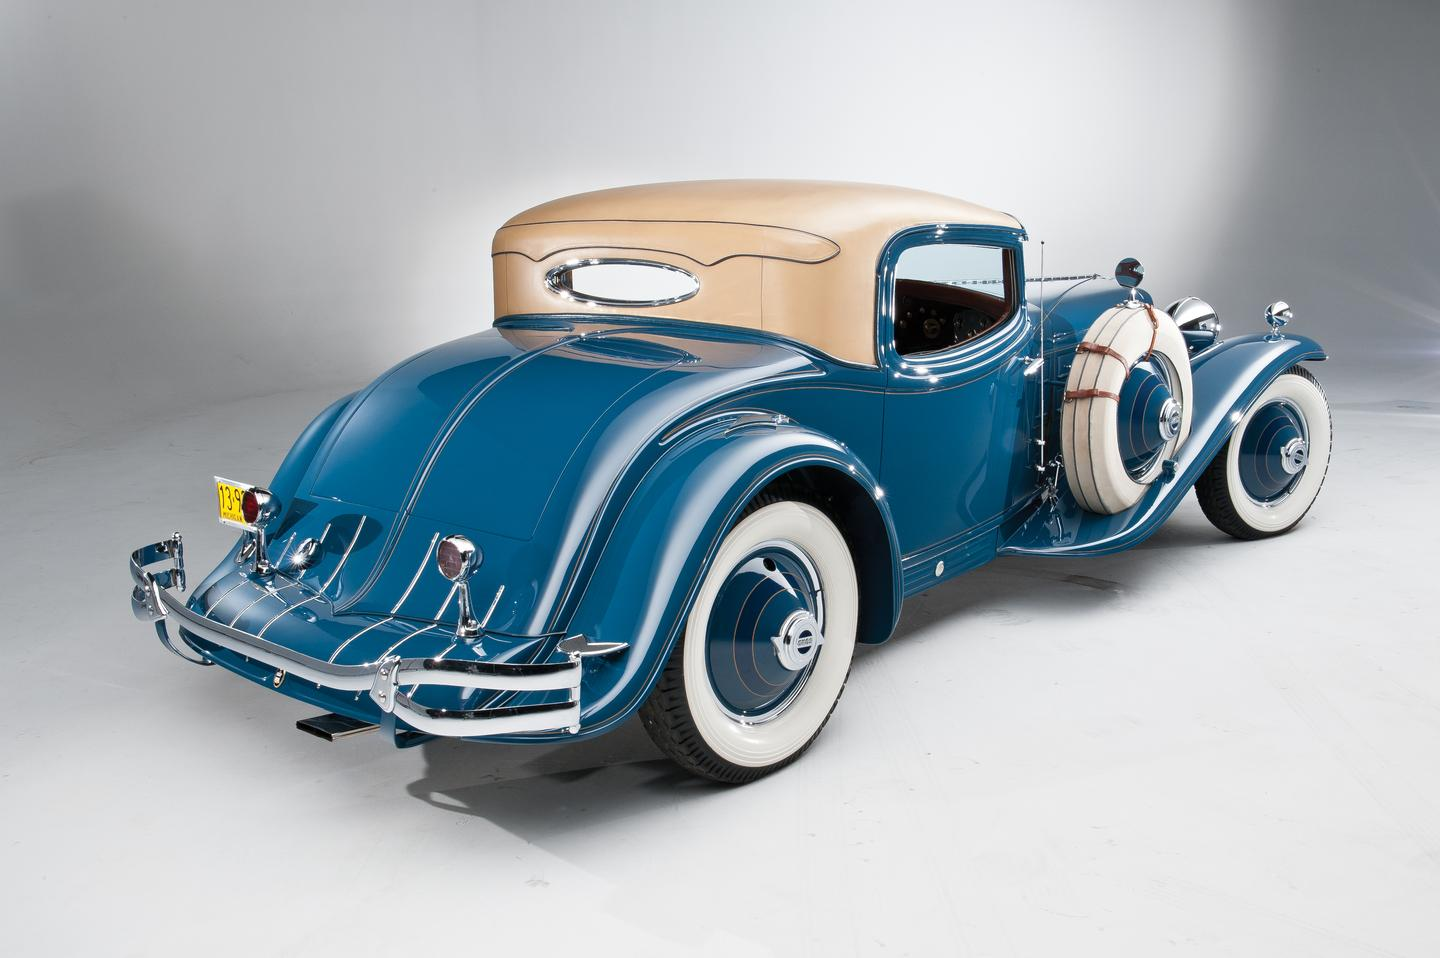 The Hayes-bodied Cord L-29 Special Coupe Image © RM Auctions and Darin Schnabel